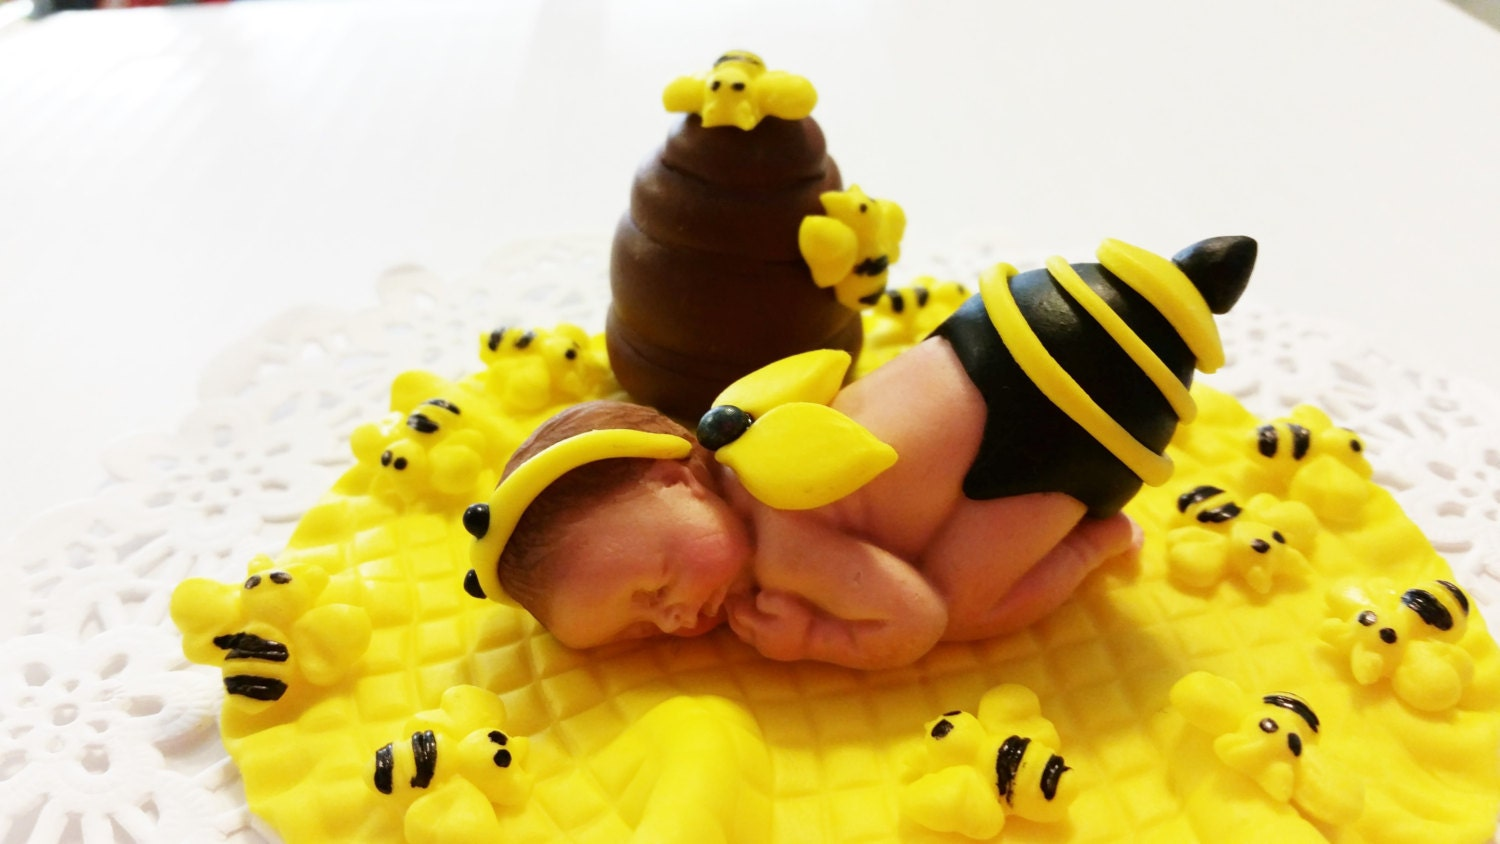 Baby Bumble Bee Sleeping On A Yellow Blanket With Little